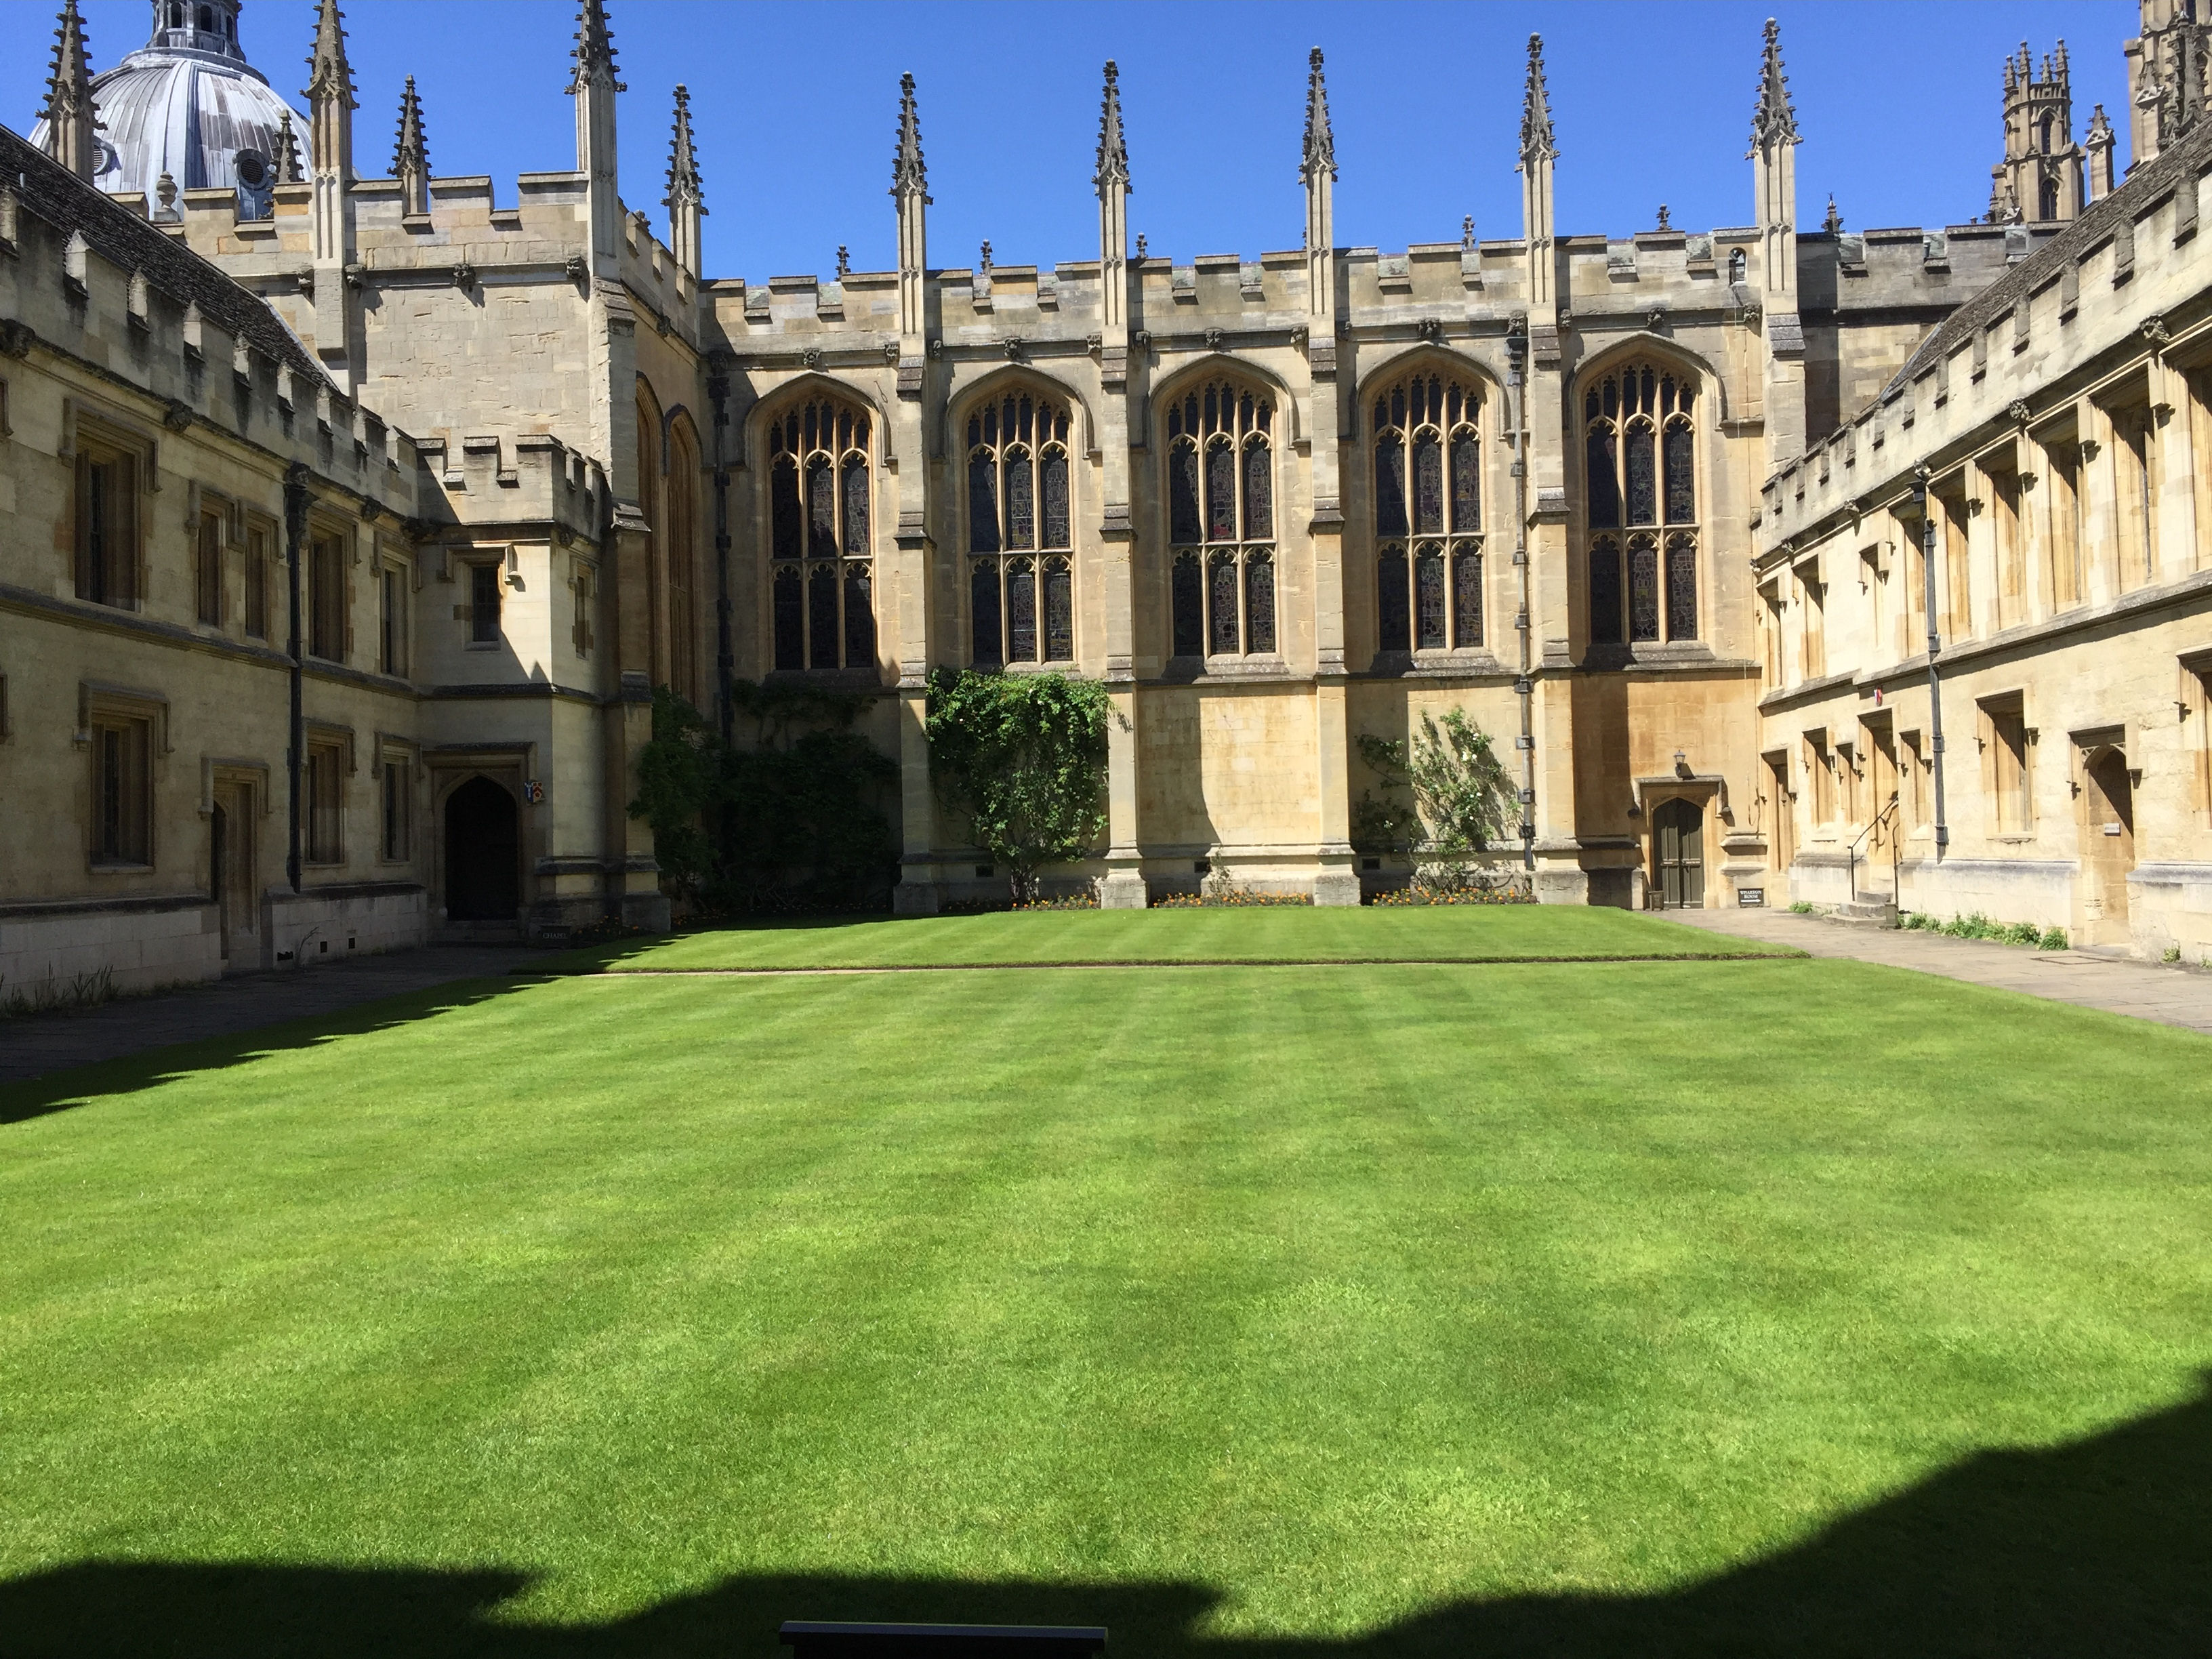 The Great Quad - All Souls College